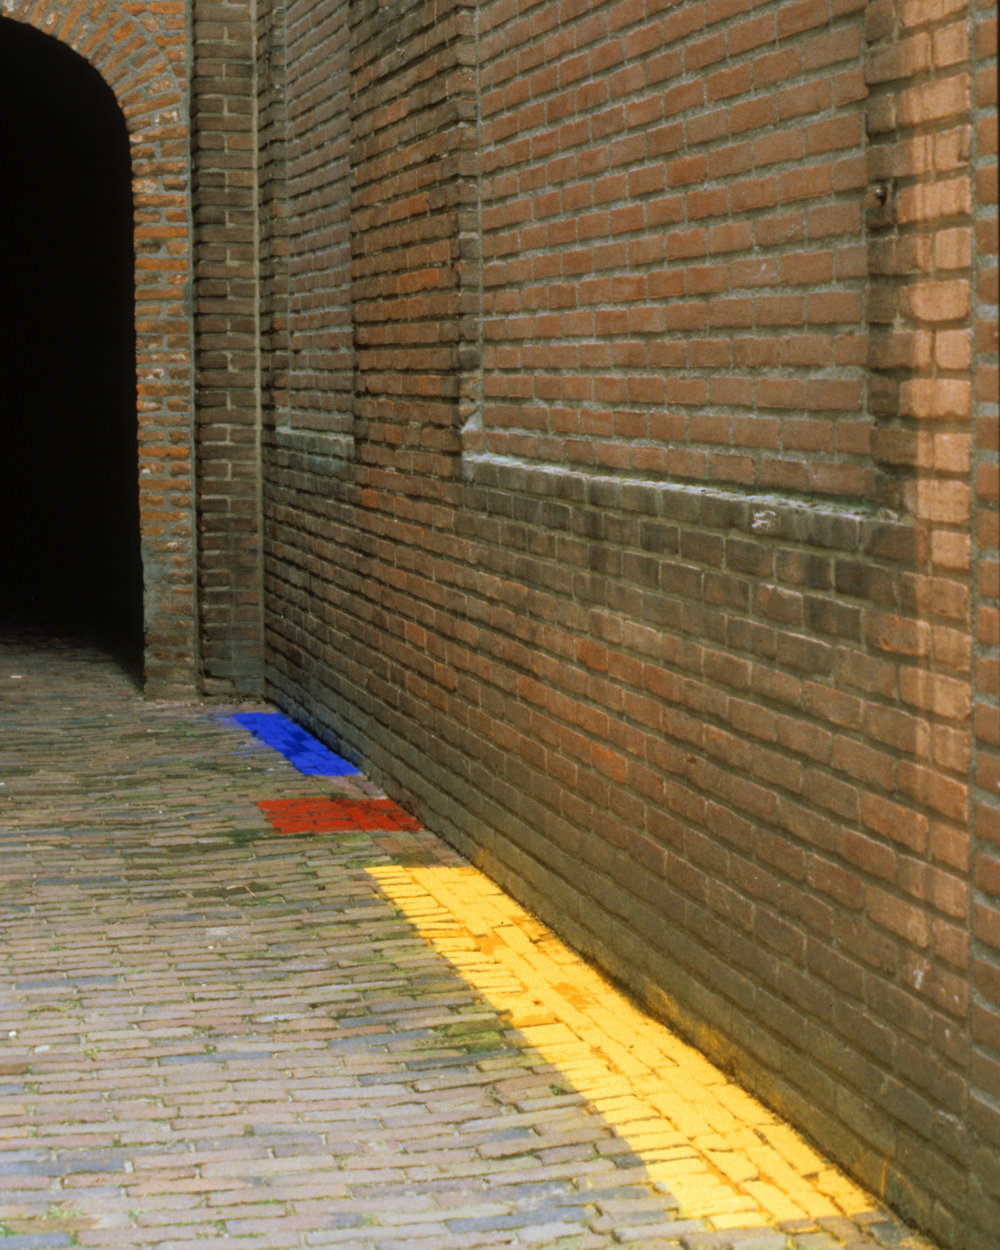 Installation, s'Hertogenbosch, NL, 1997  Oxides on brick, dimensions variable